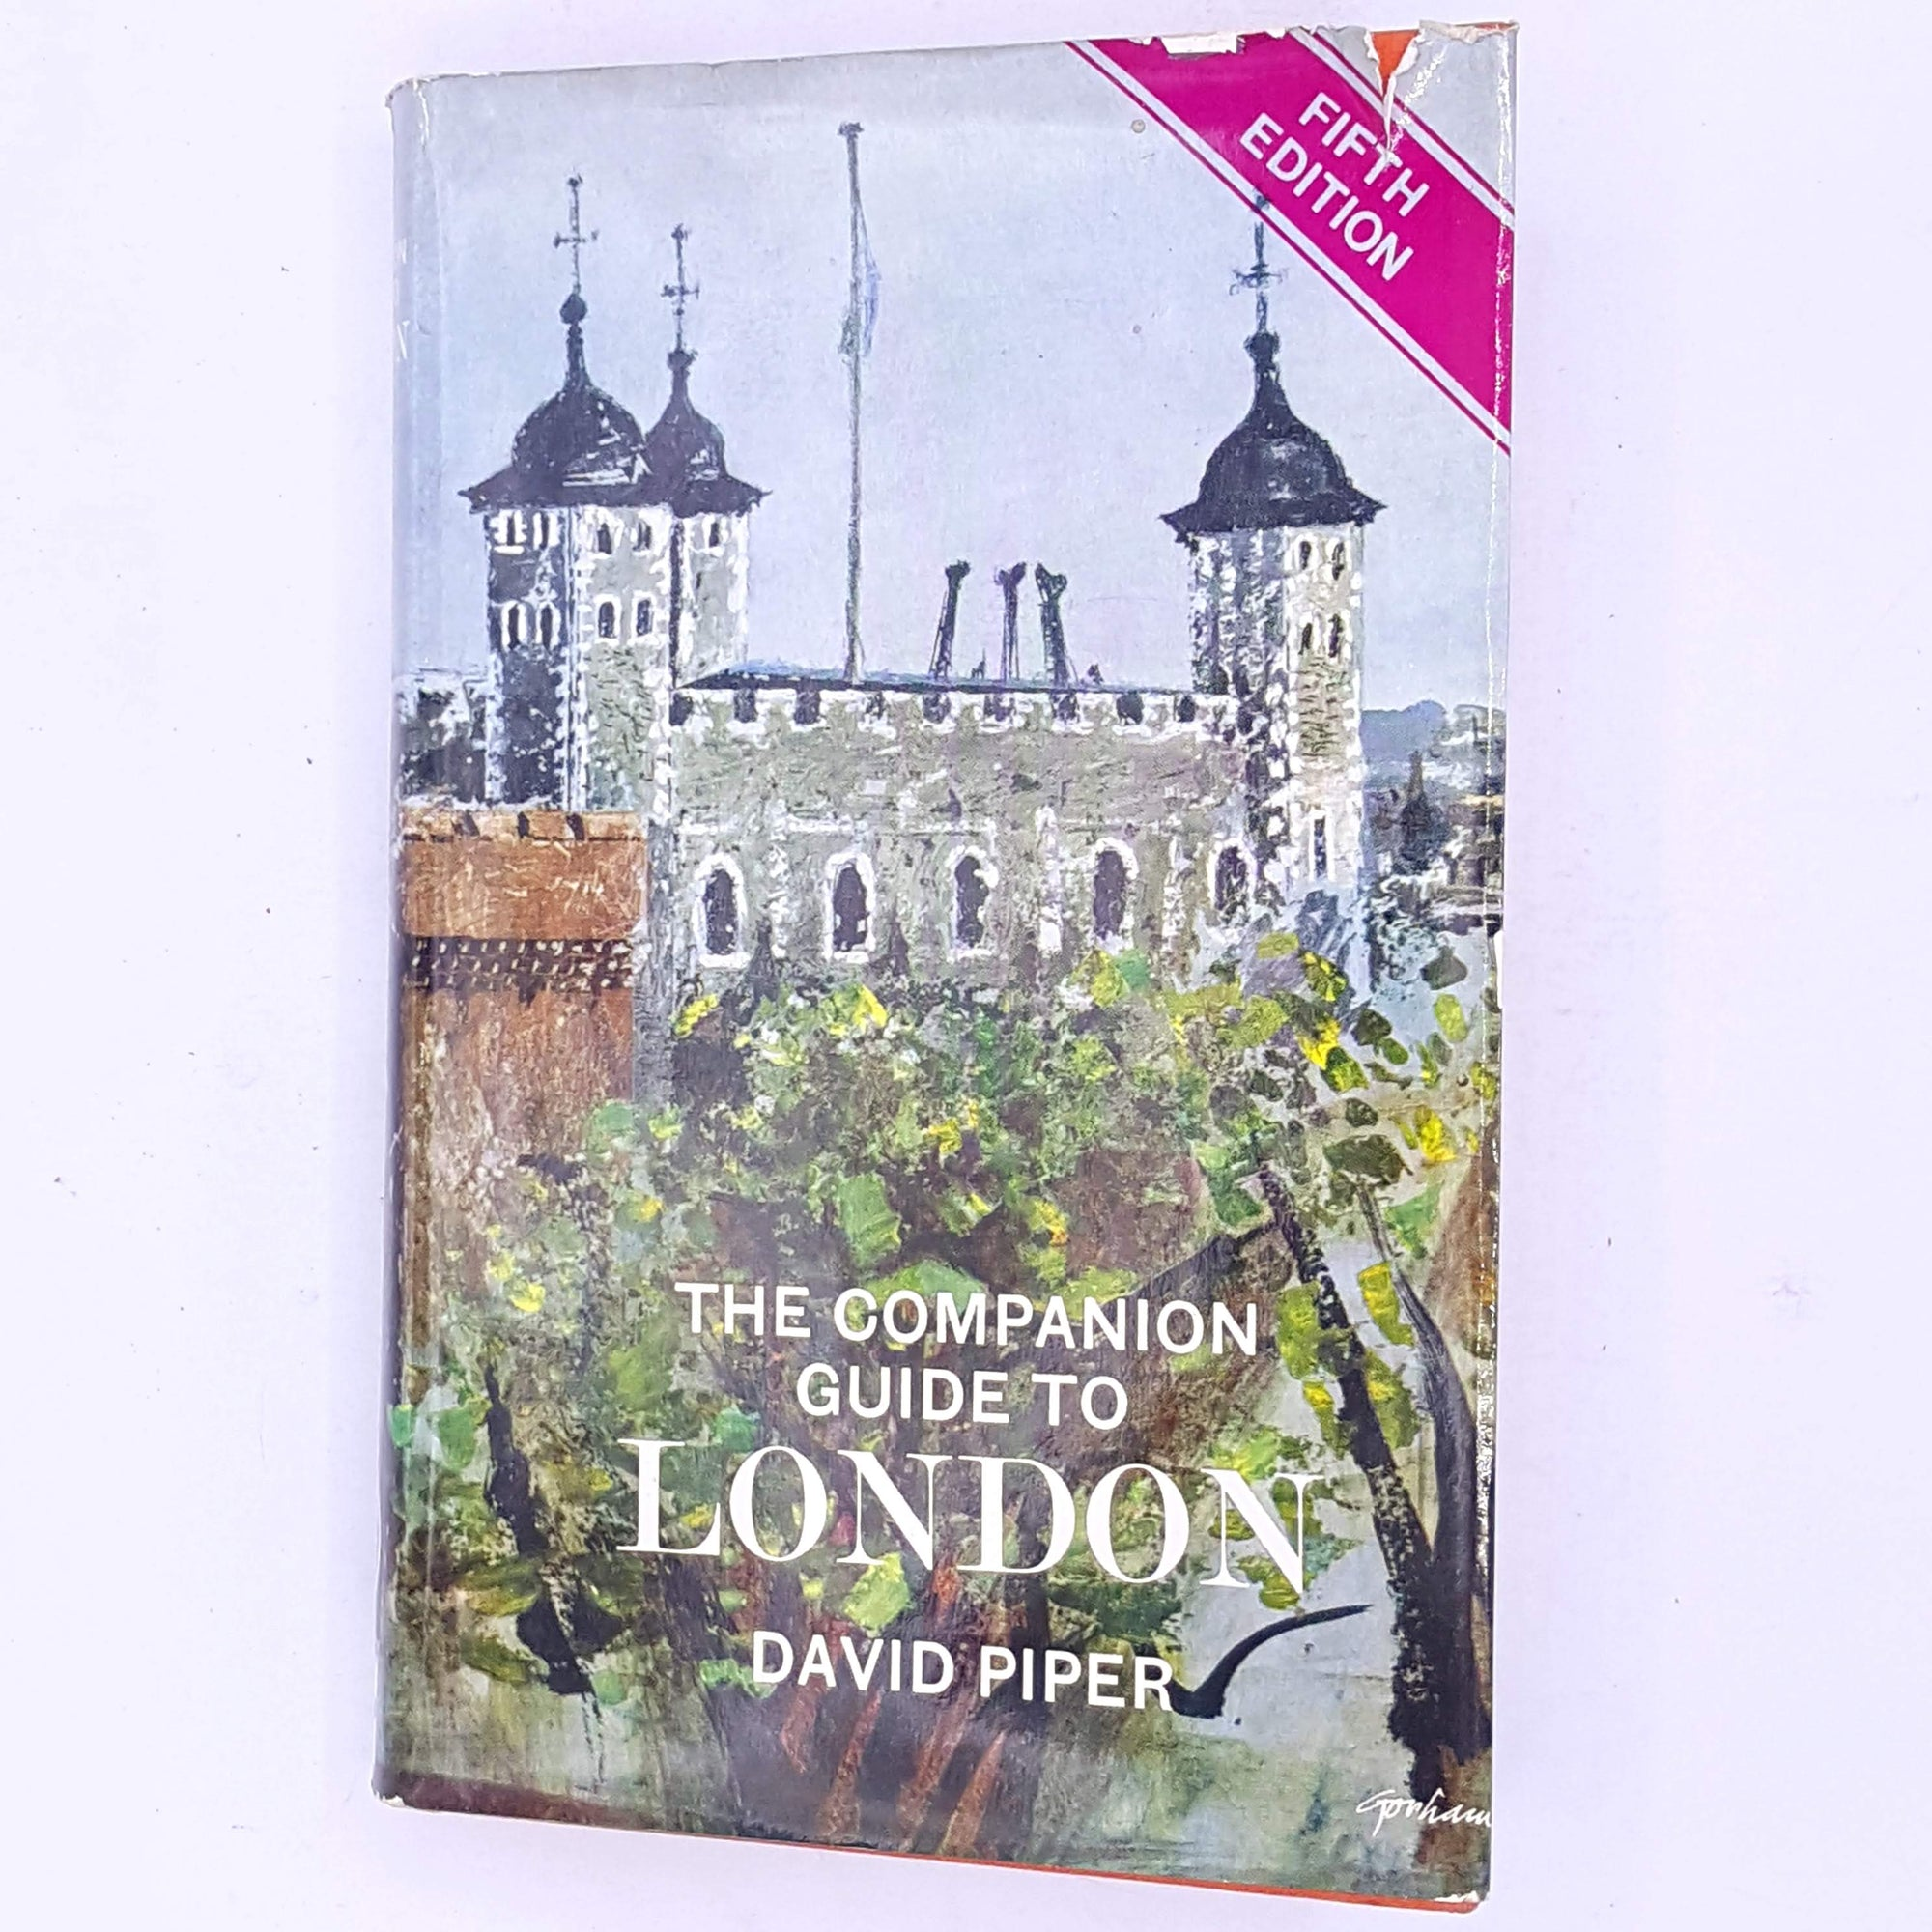 antique-classic-vintage-the-companion-guide-to-london--thrift-patterned-decorative-london-uk-england-david-piper-britain-british-captial-city-books-country-house-library-old-